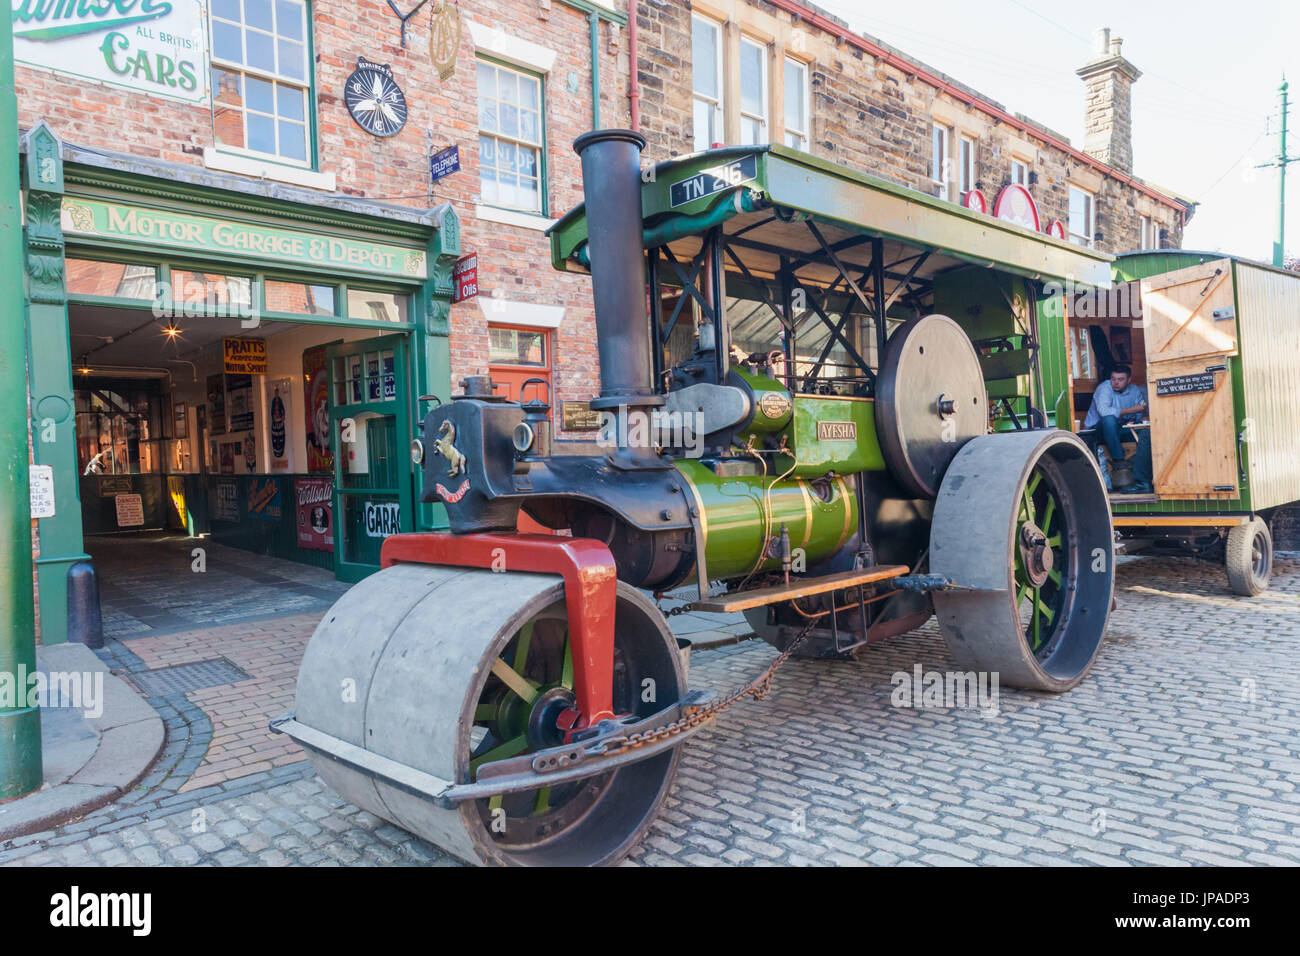 England, County Durham, Beamish Open Air Museum, Vintage Steamroller - Stock Image